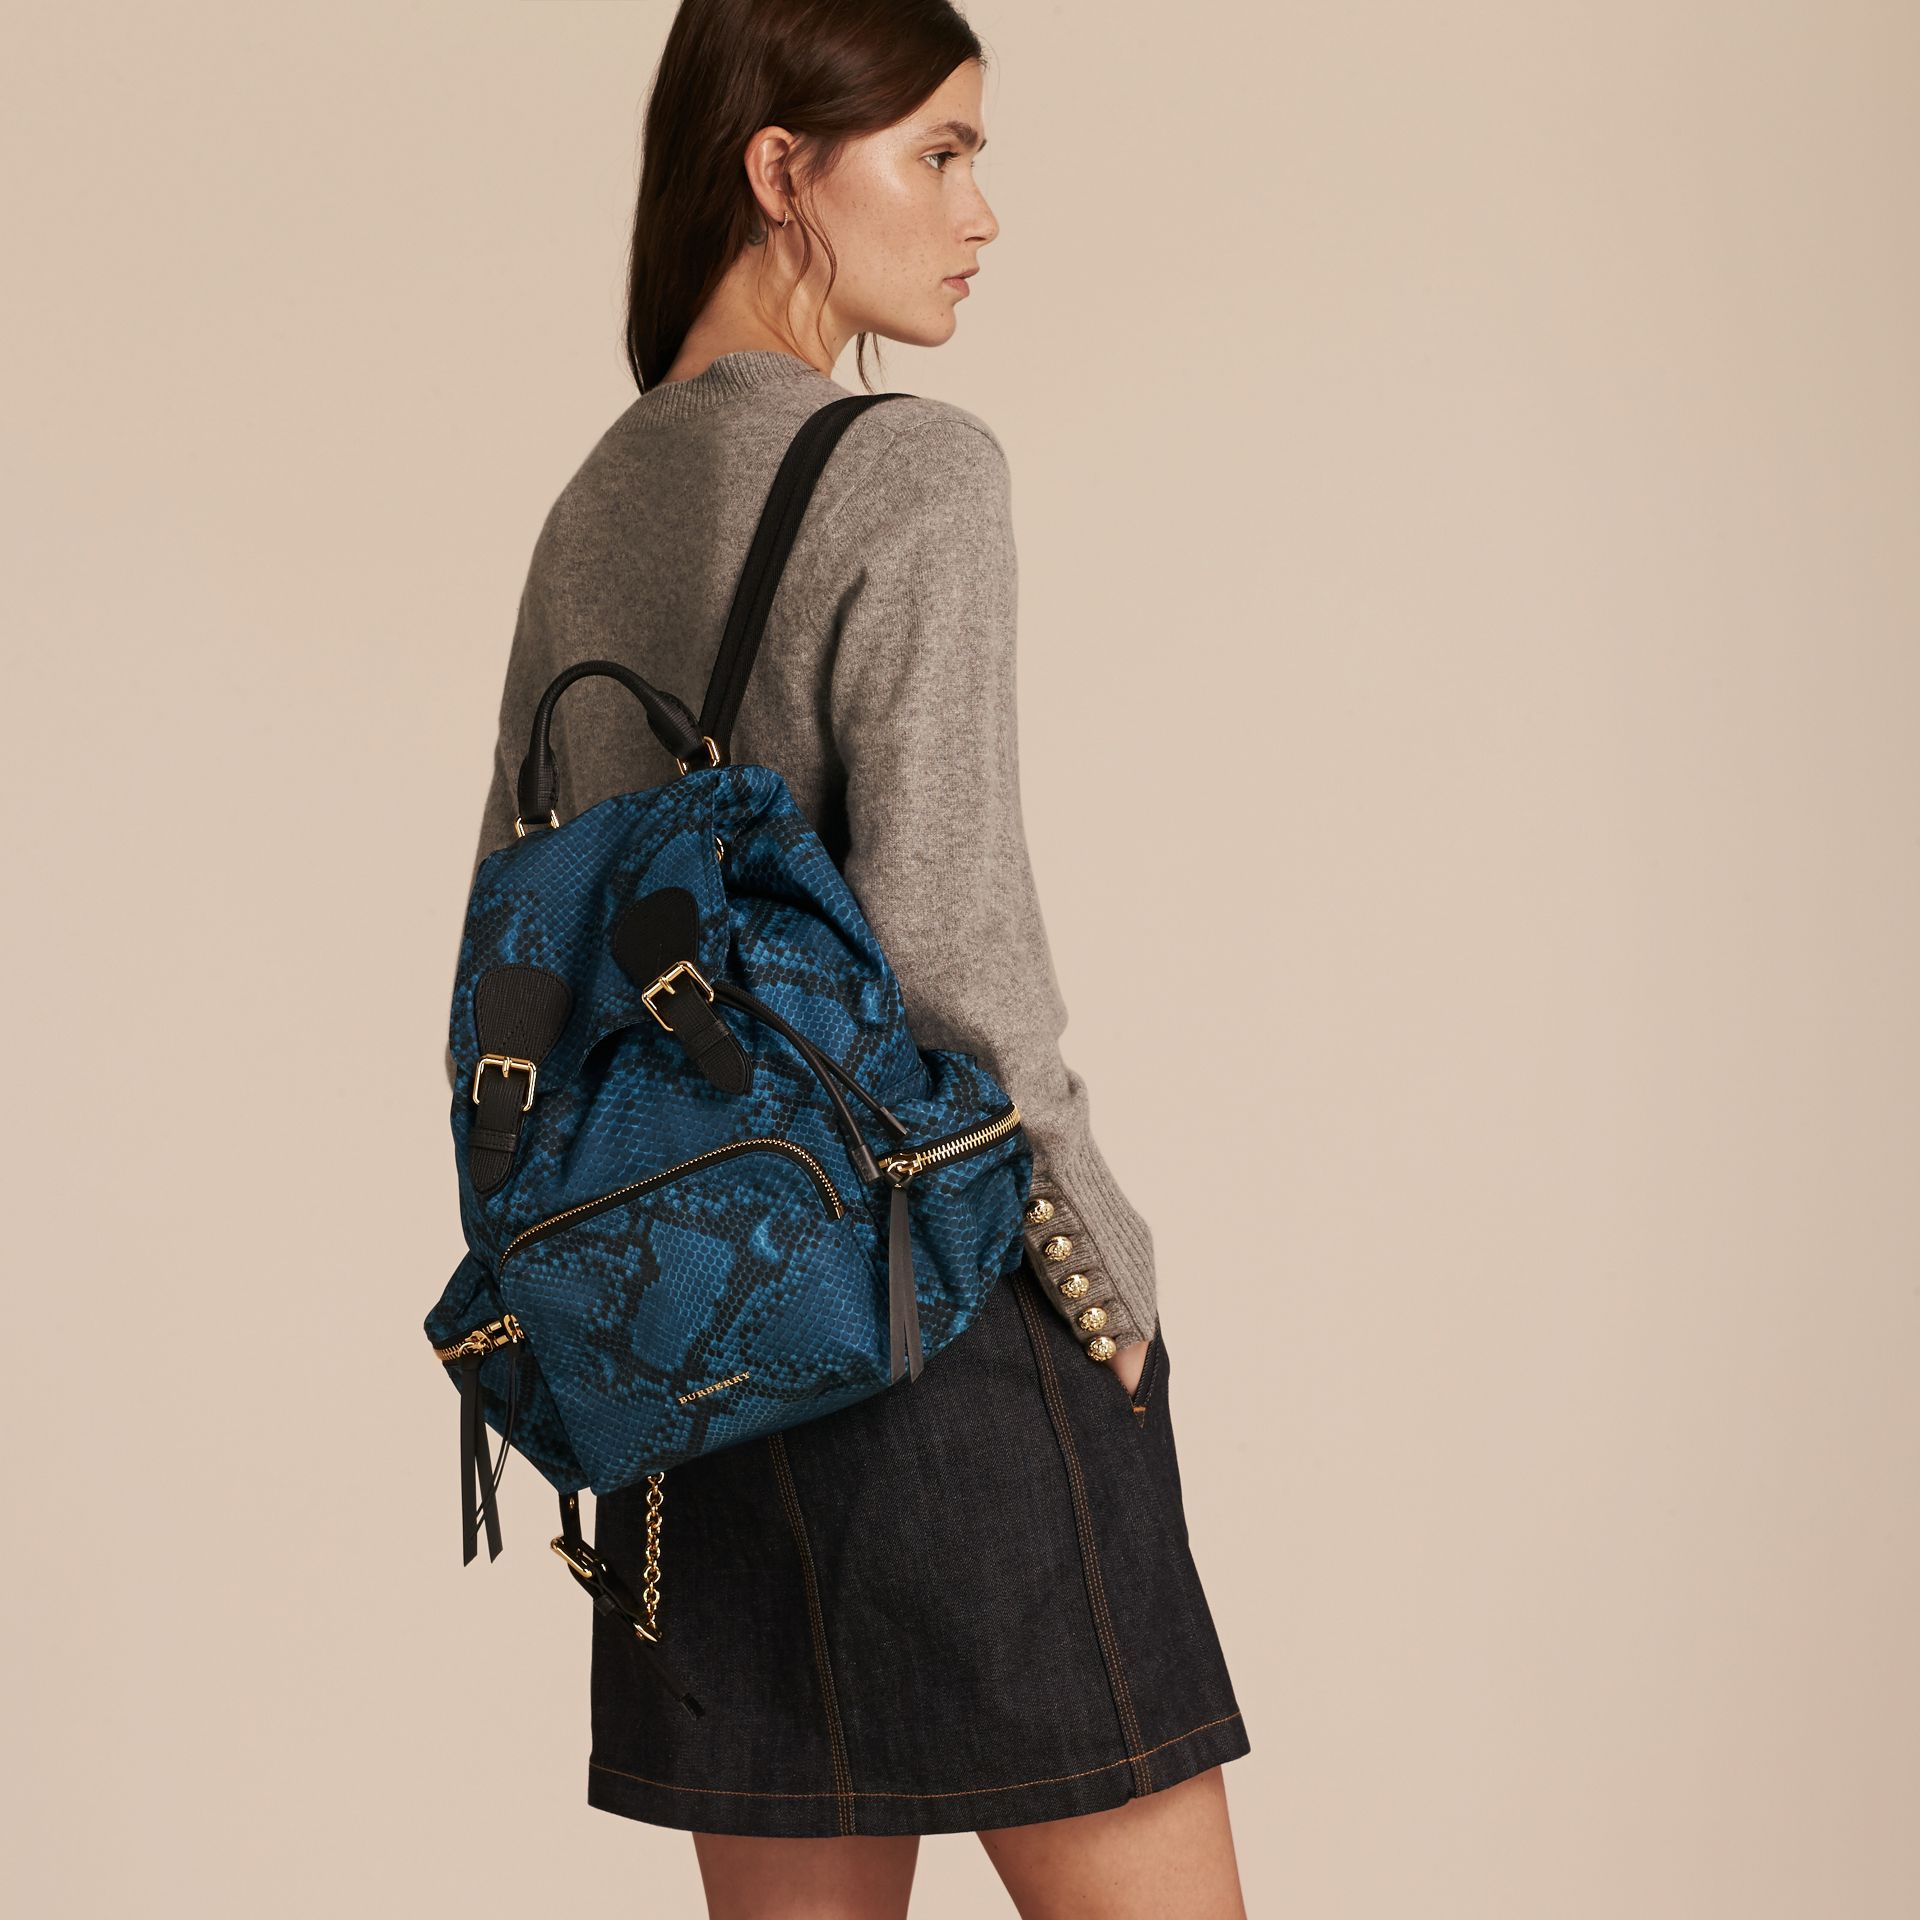 The Medium Rucksack in Python Print Nylon and Leather - Women | Burberry - gallery image 3